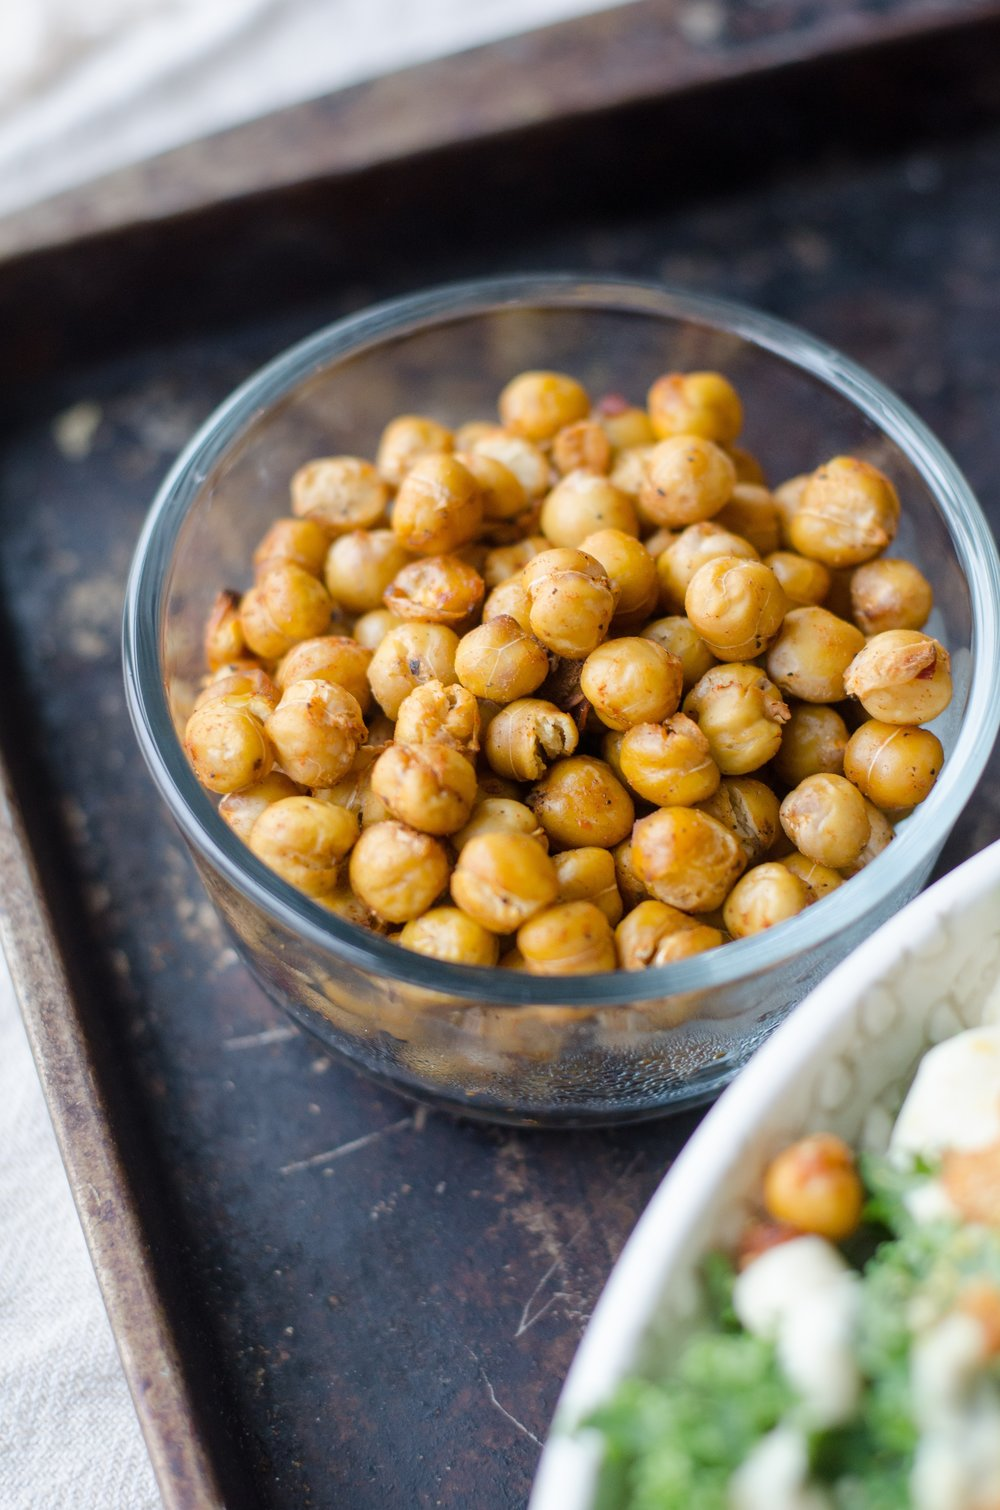 These tiny crispy beans should really be the new bar nuts. As simple as opening two cans of chickpeas and turning on the stovetop, you could be 20 minutes away from these addictively salty crispy bites. So what are you waiting for?